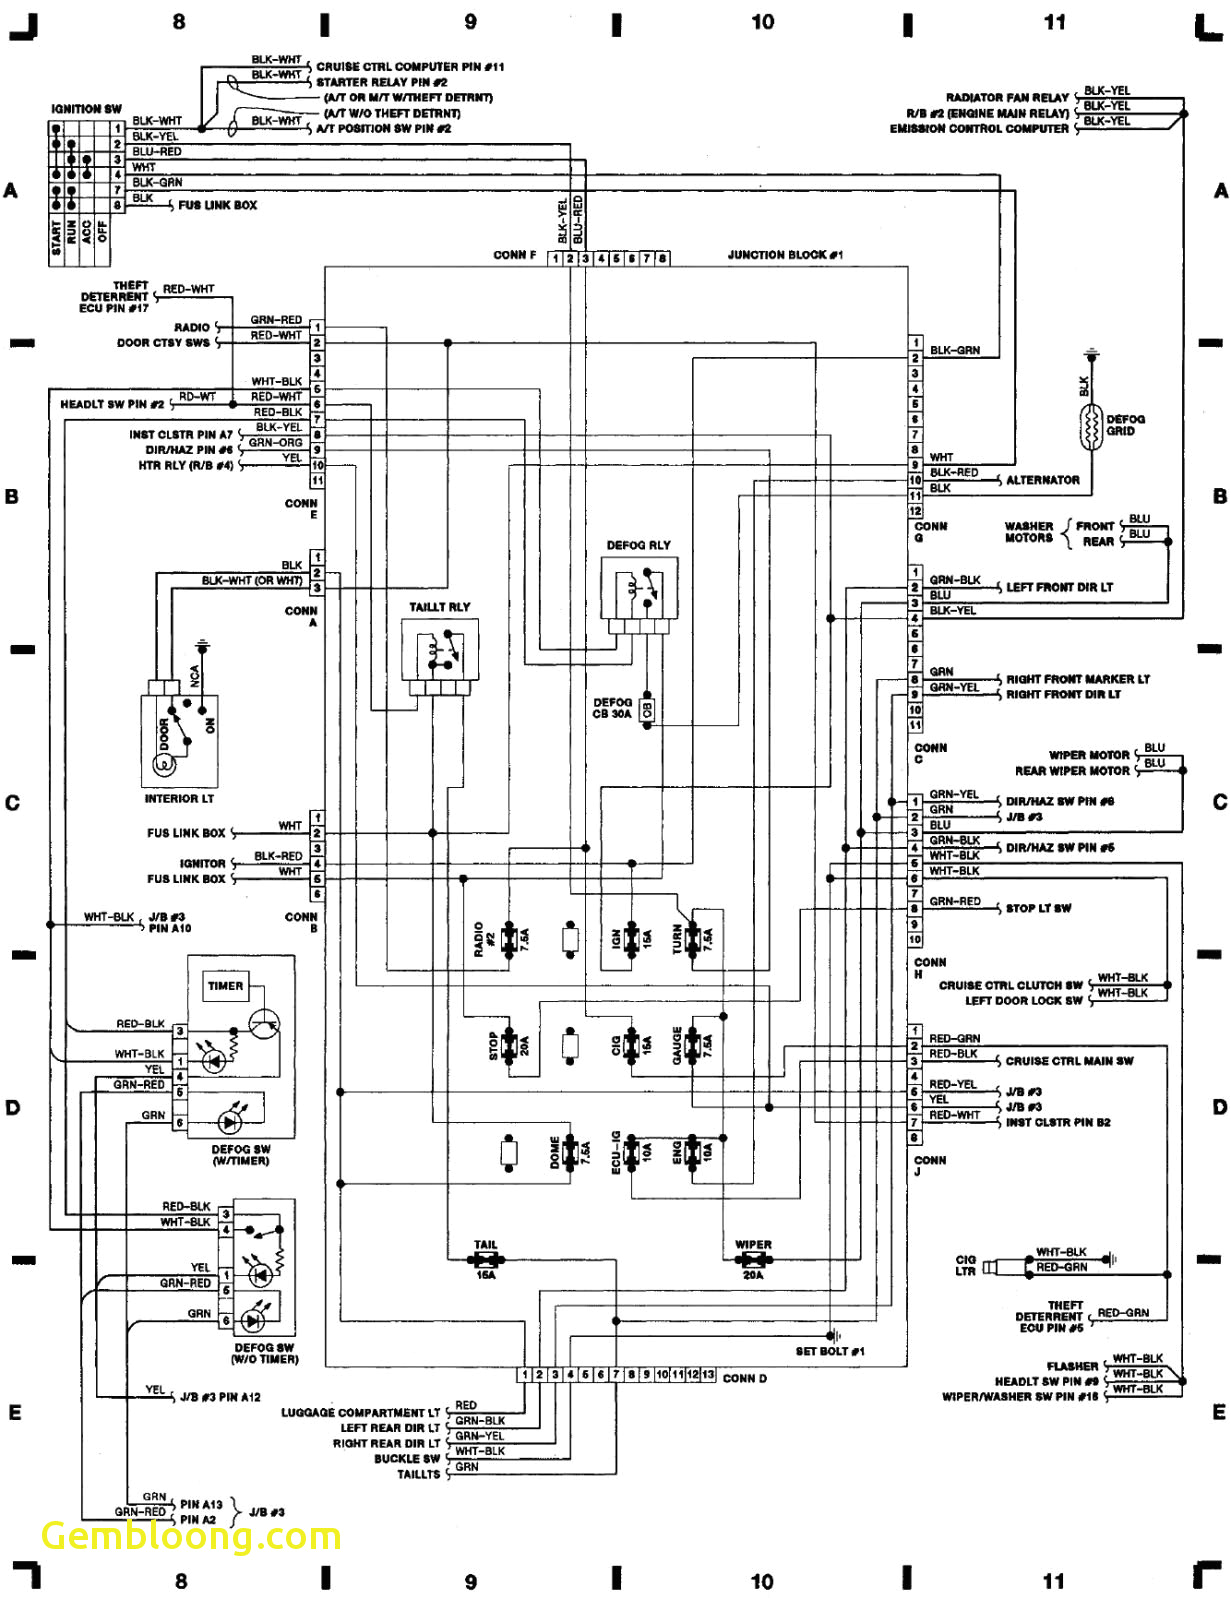 2000 toyota corolla wiring diagram wiring diagram meta 2000 toyota corolla engine diagram wiring diagram toolbox